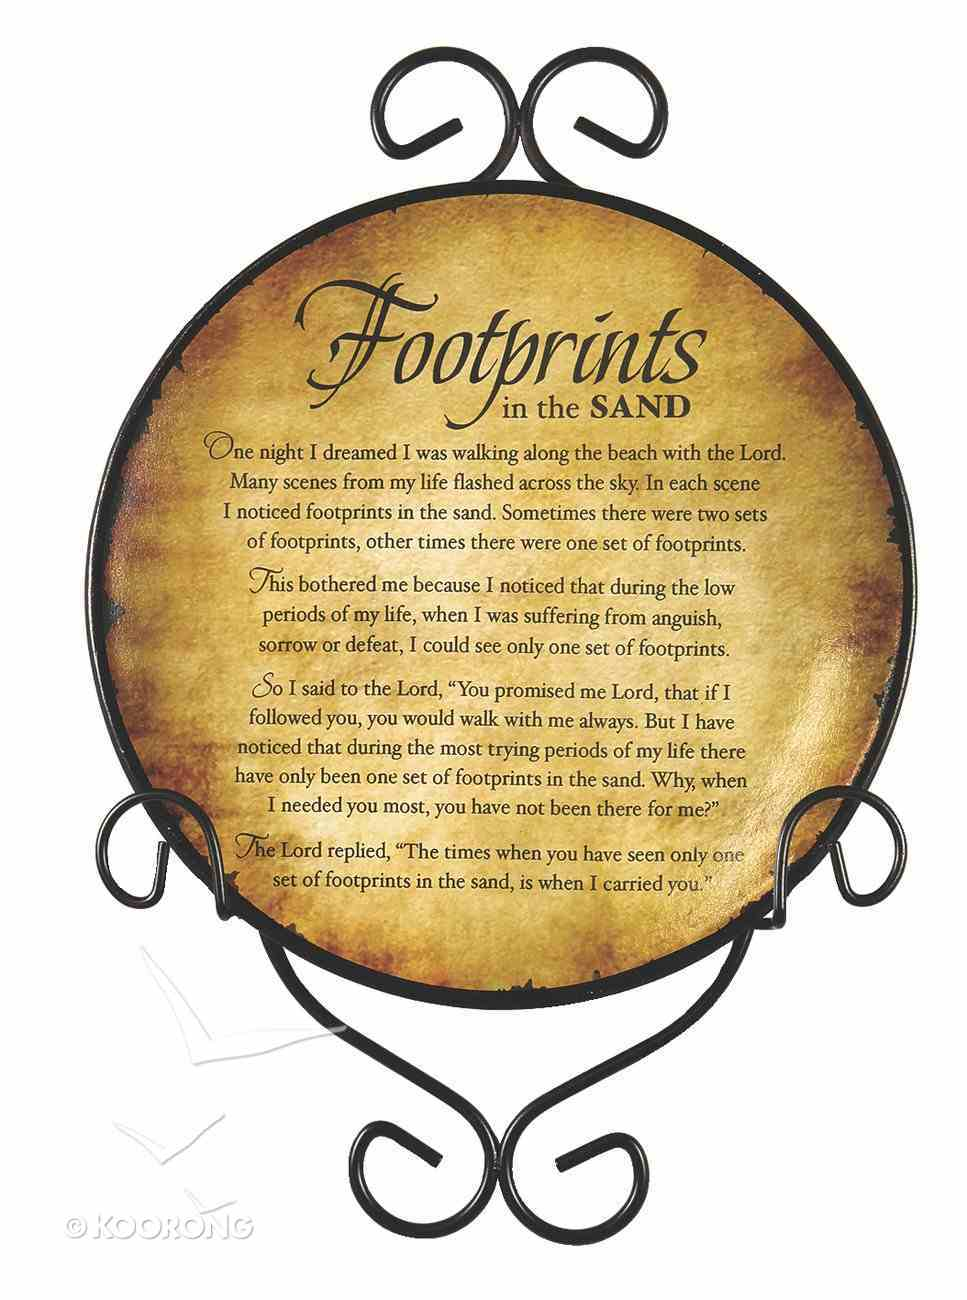 Ceramic Plate With Display Rack: Footprints Homeware